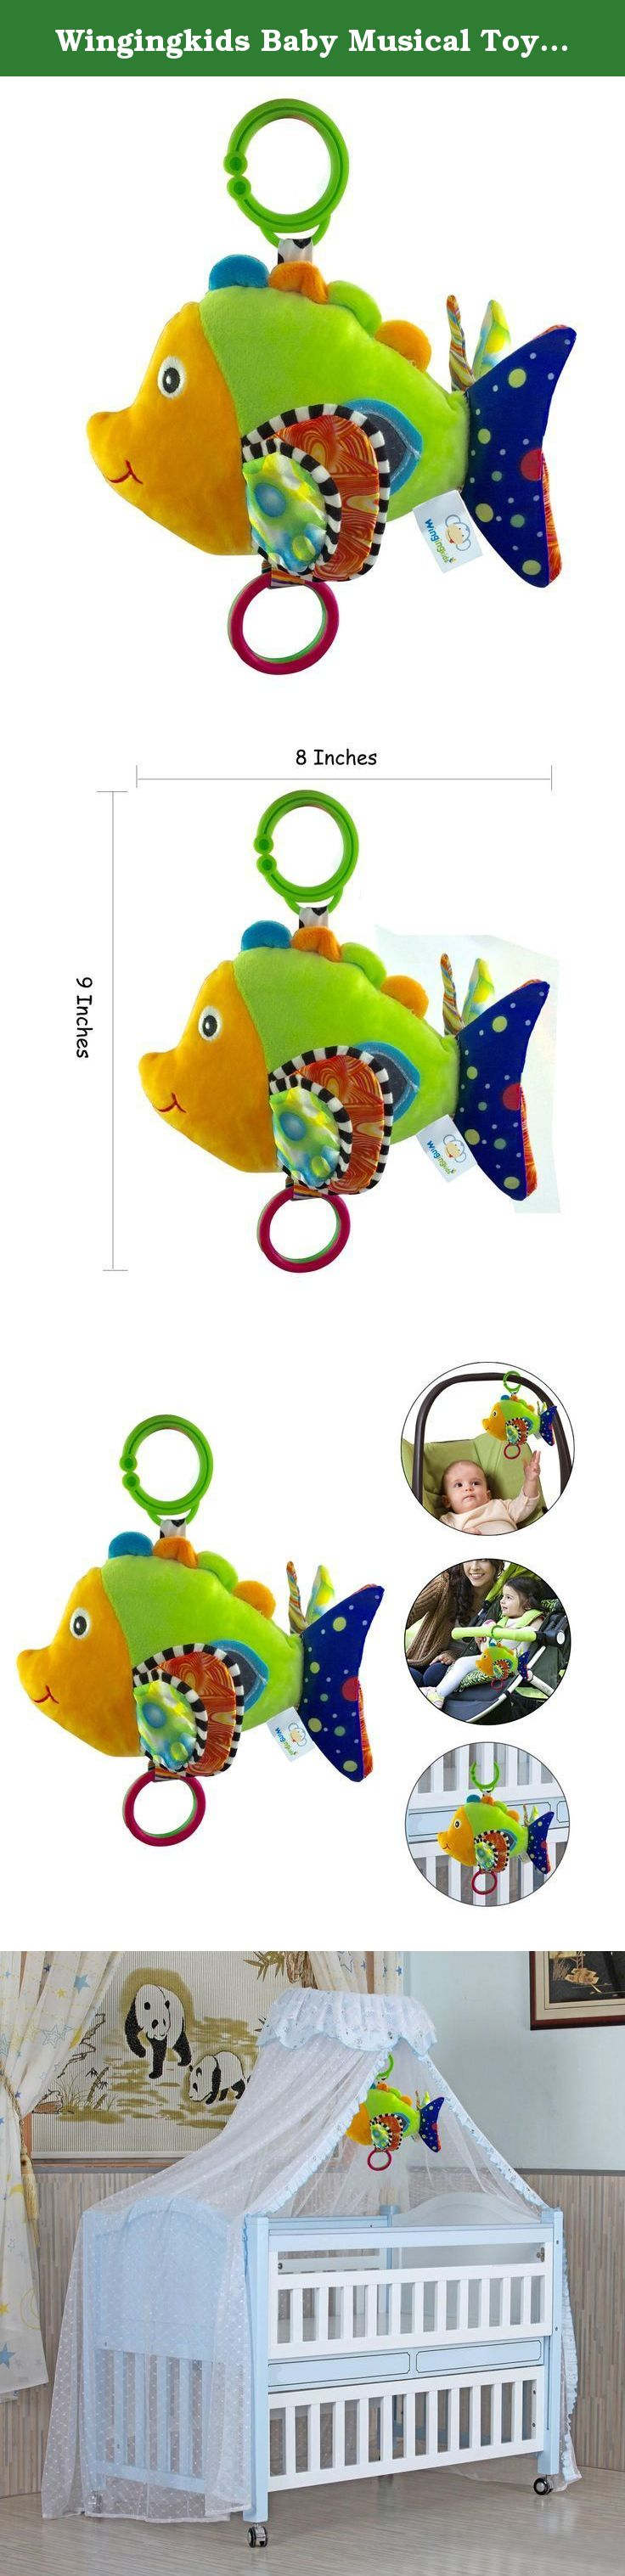 Wingingkids Baby Musical Toys Stroller Toys for 0 3 Year Old Baby